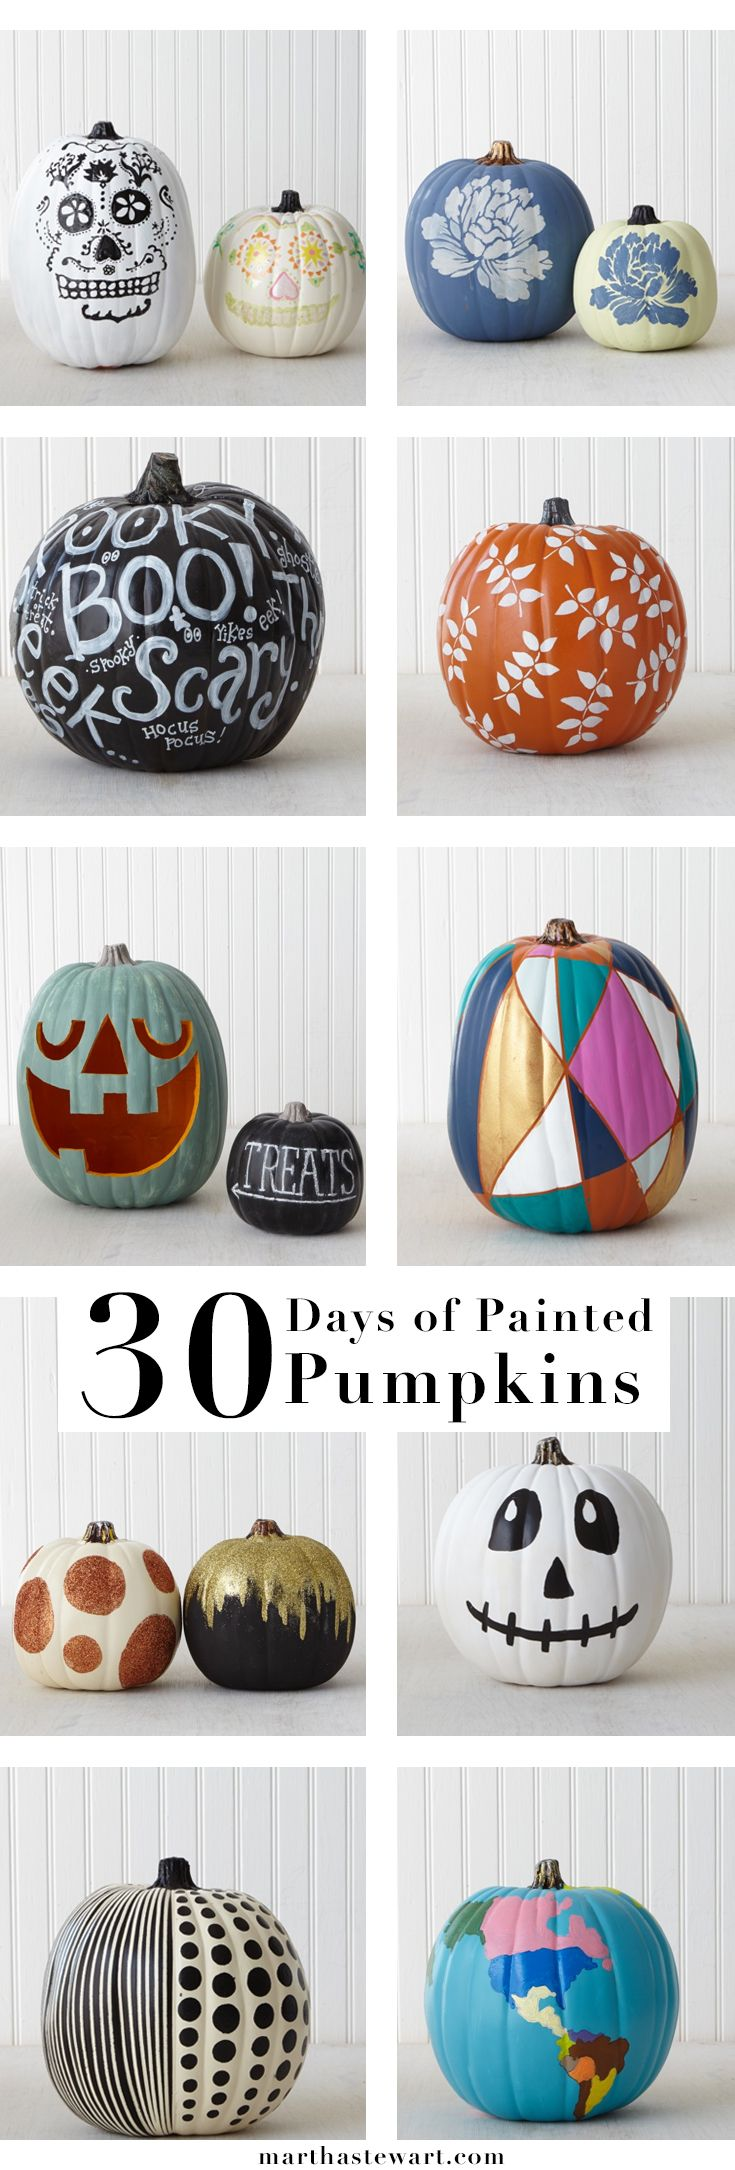 Get inspired by handmade pumpkin designs by Martha Stewart crafters and staffers using Martha Stewart Craft paints!